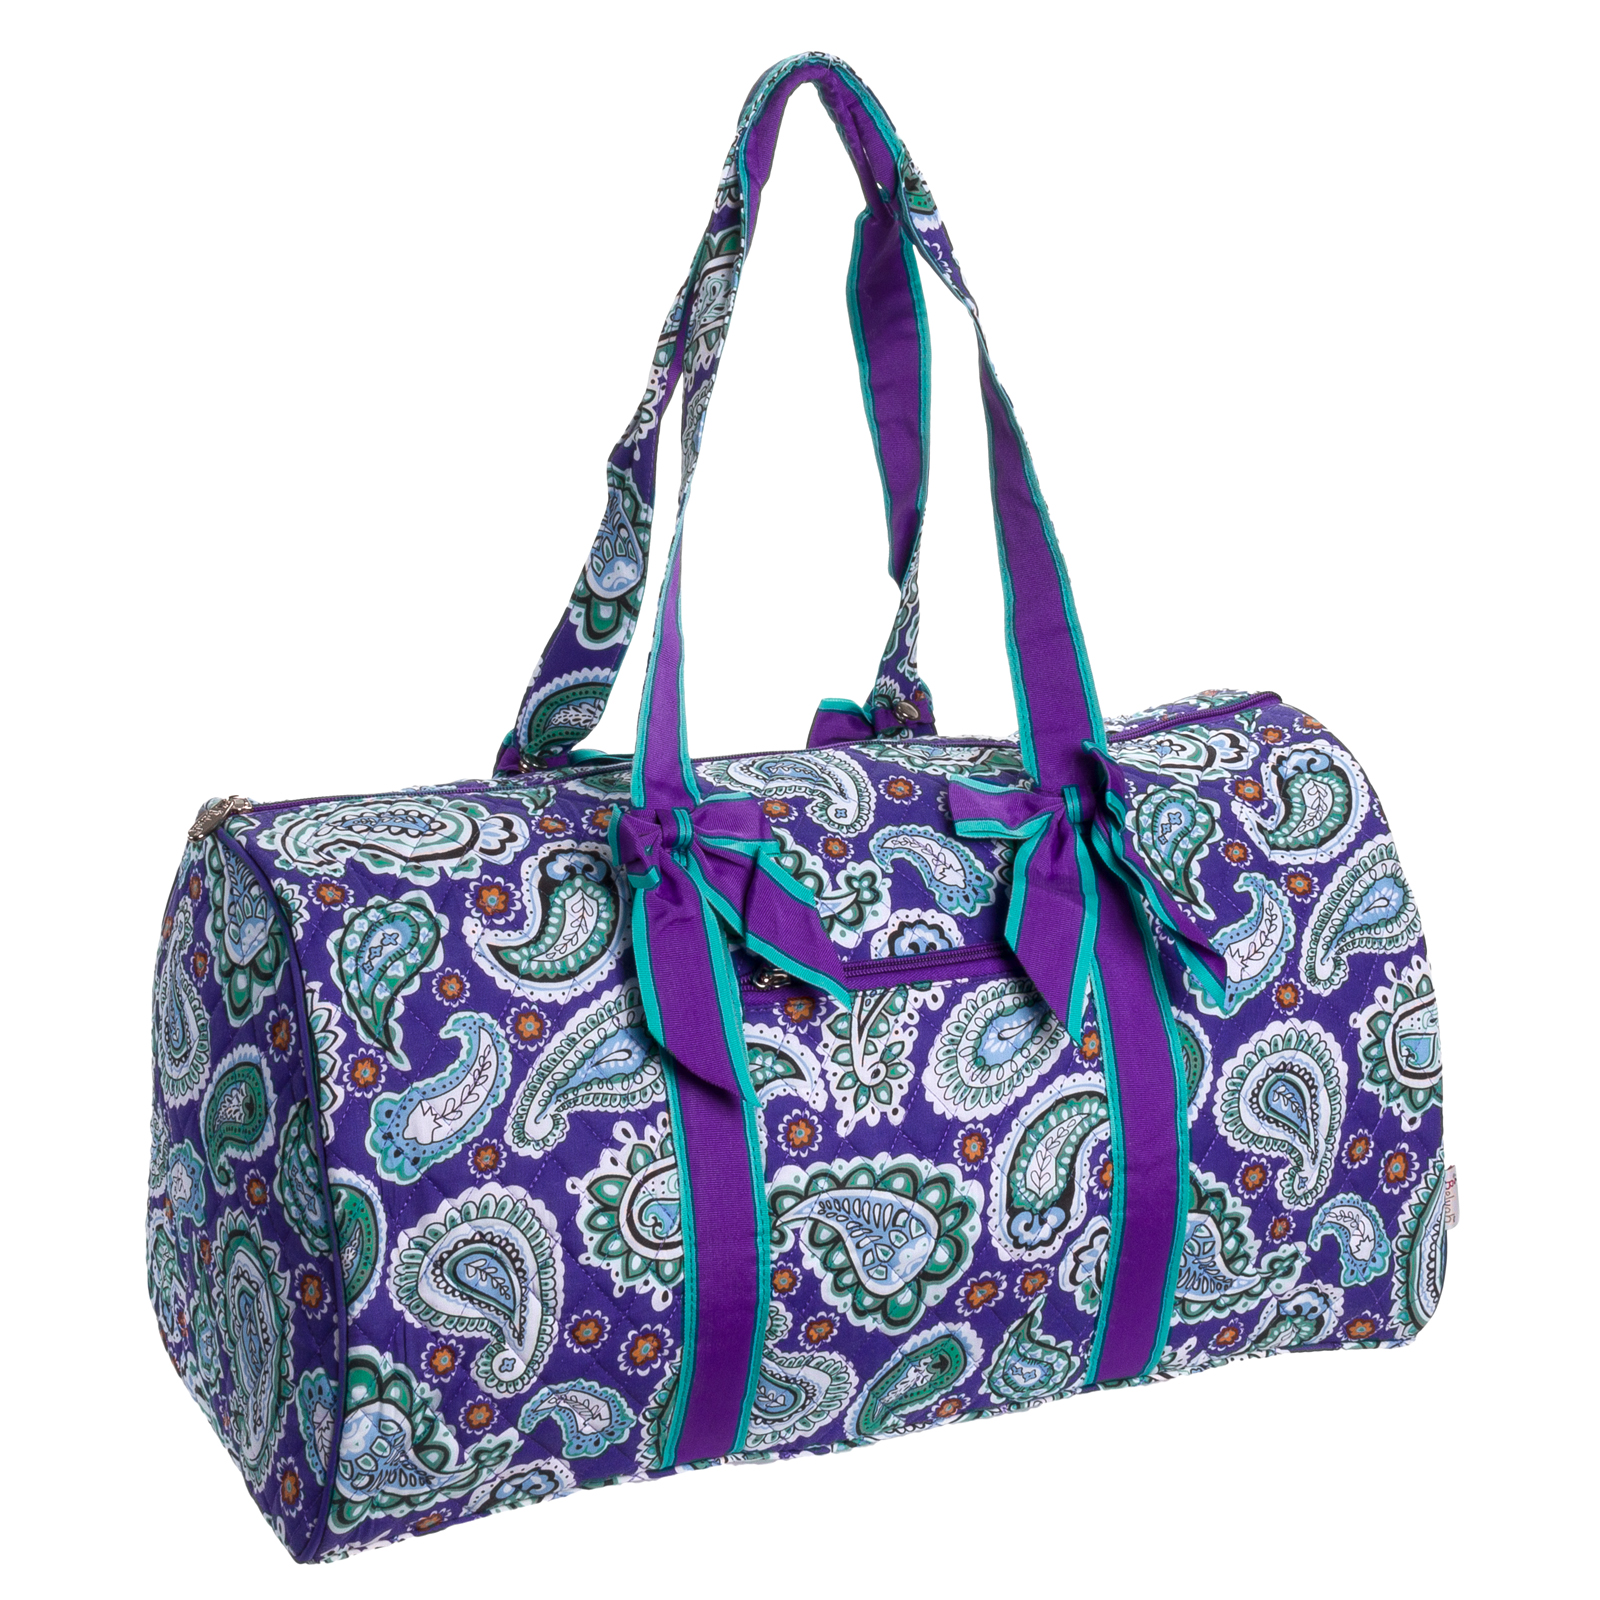 belvah quilted purple paisley large duffle bag travel